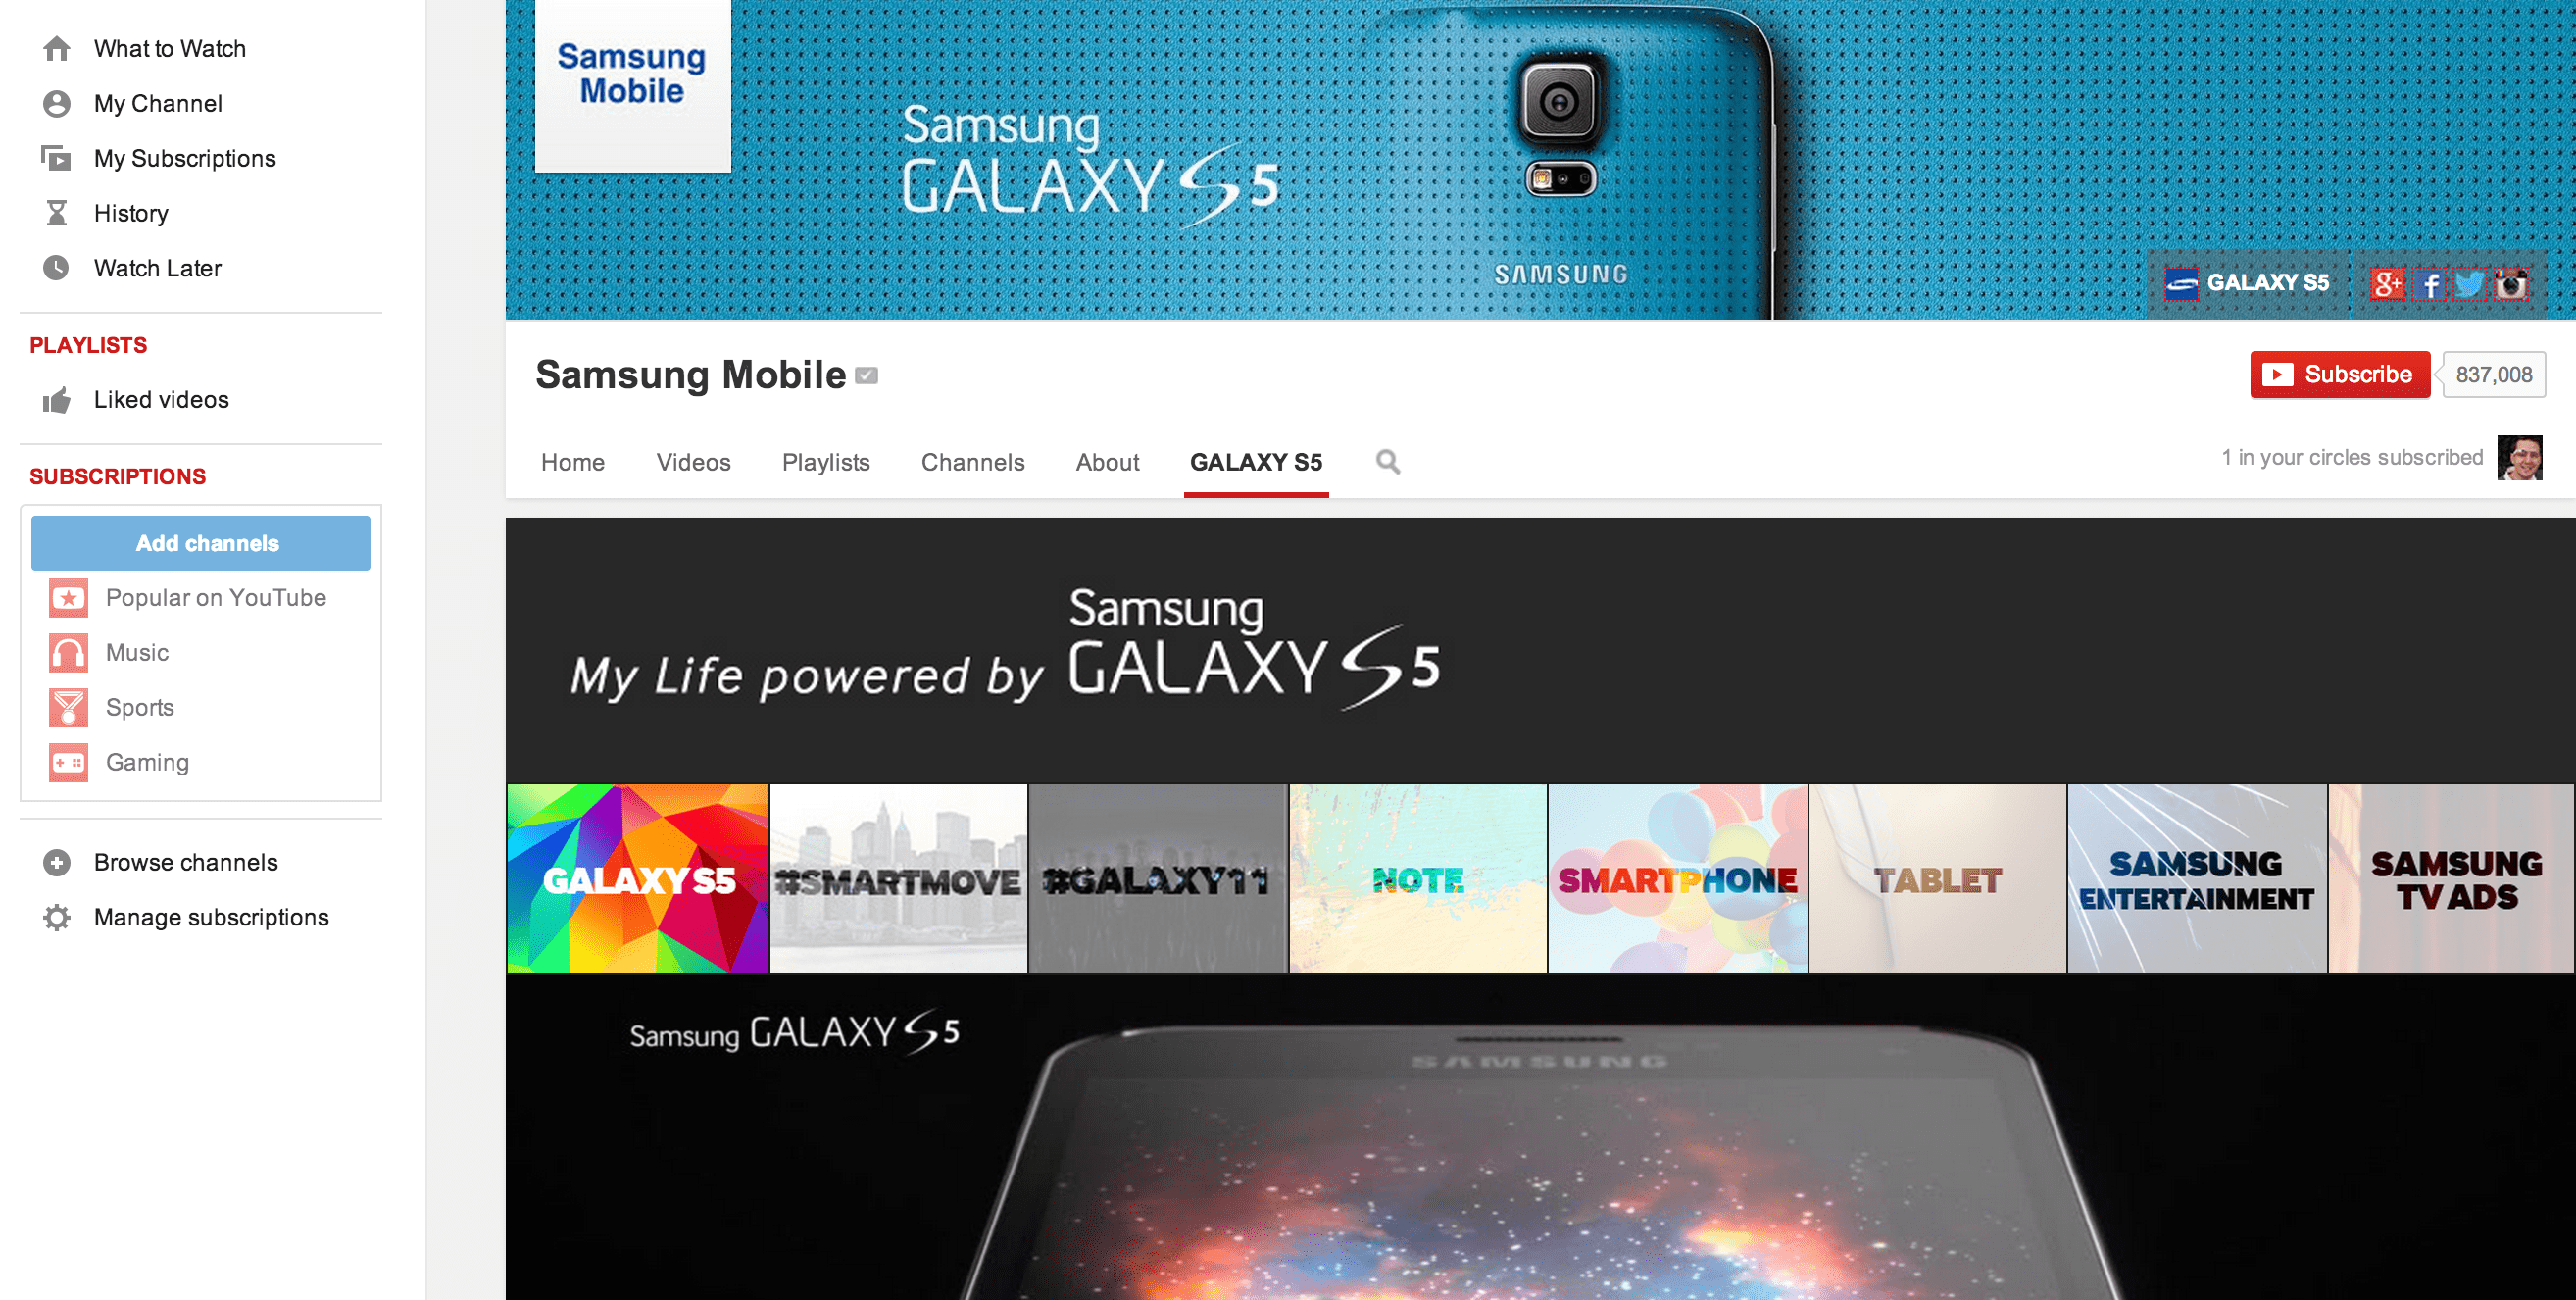 Samsung Mobile Marketing on Youtube